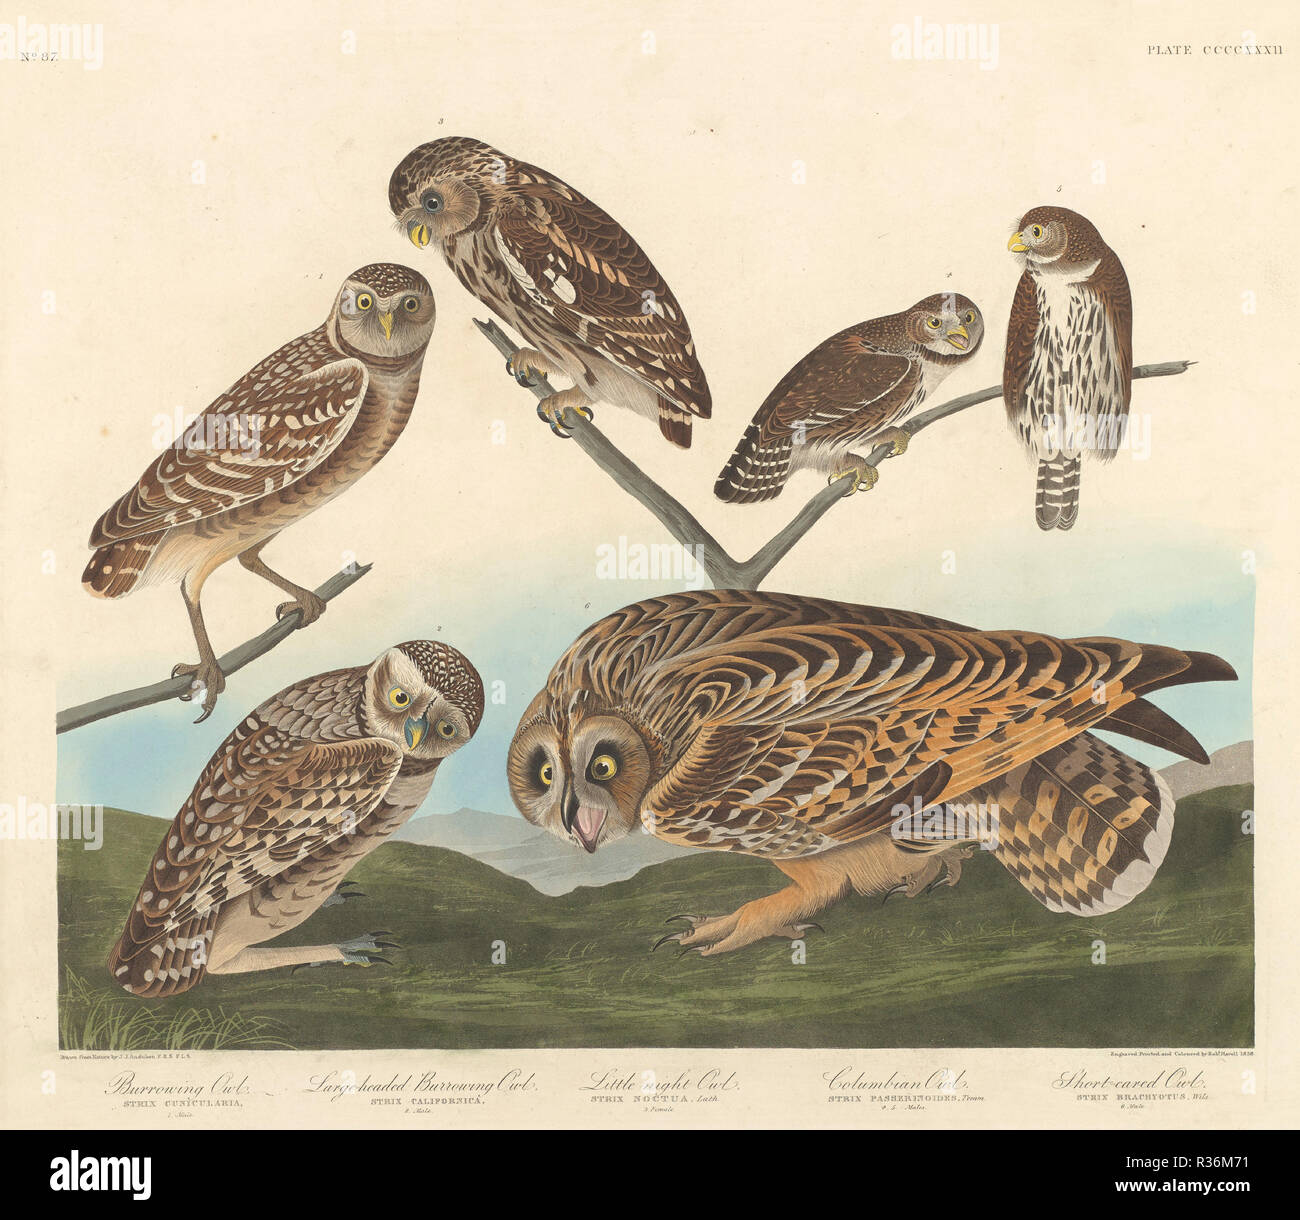 Grabende Eule, Large-Headed andLittle Graben OWL Night Owl. Stand: 1838. Medium: Handcolorierte Kupferstich und Aquatinta auf Whatman webte Papier. Museum: Nationalgalerie, Washington DC. Autor: Robert Havell nach John James Audubon. AUDUBON, John James. Stockbild